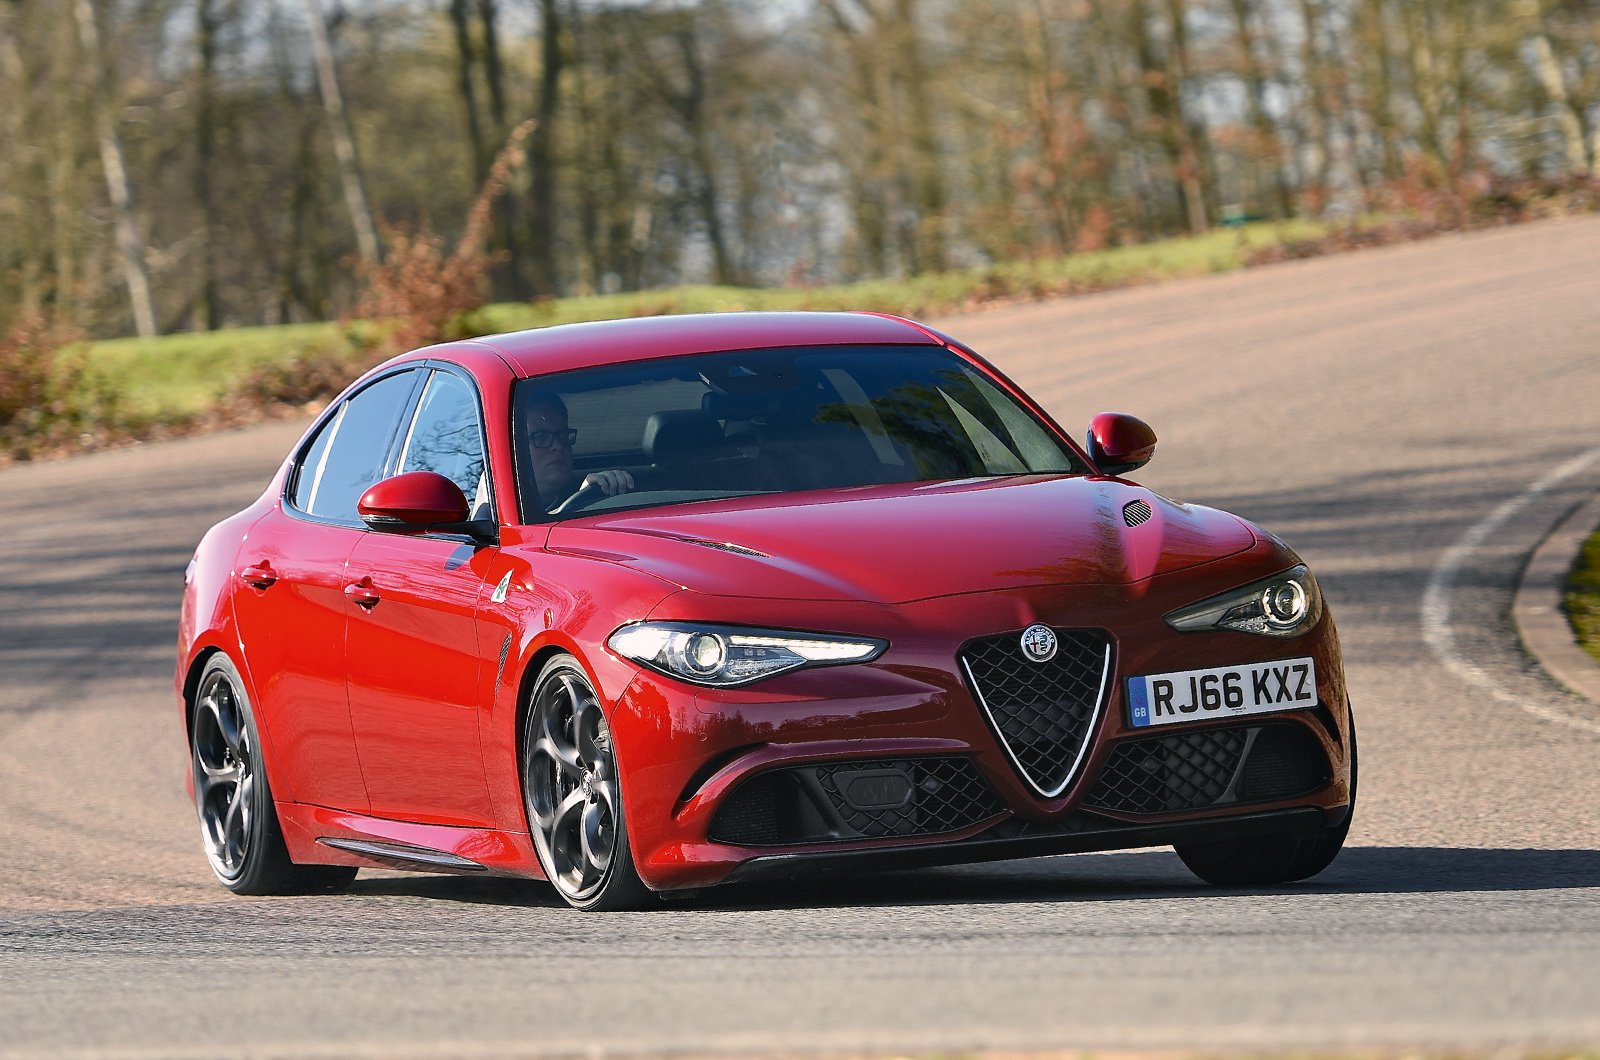 New Kia Stinger vs used Alfa Romeo Giulia Quadrifoglio: which is best?